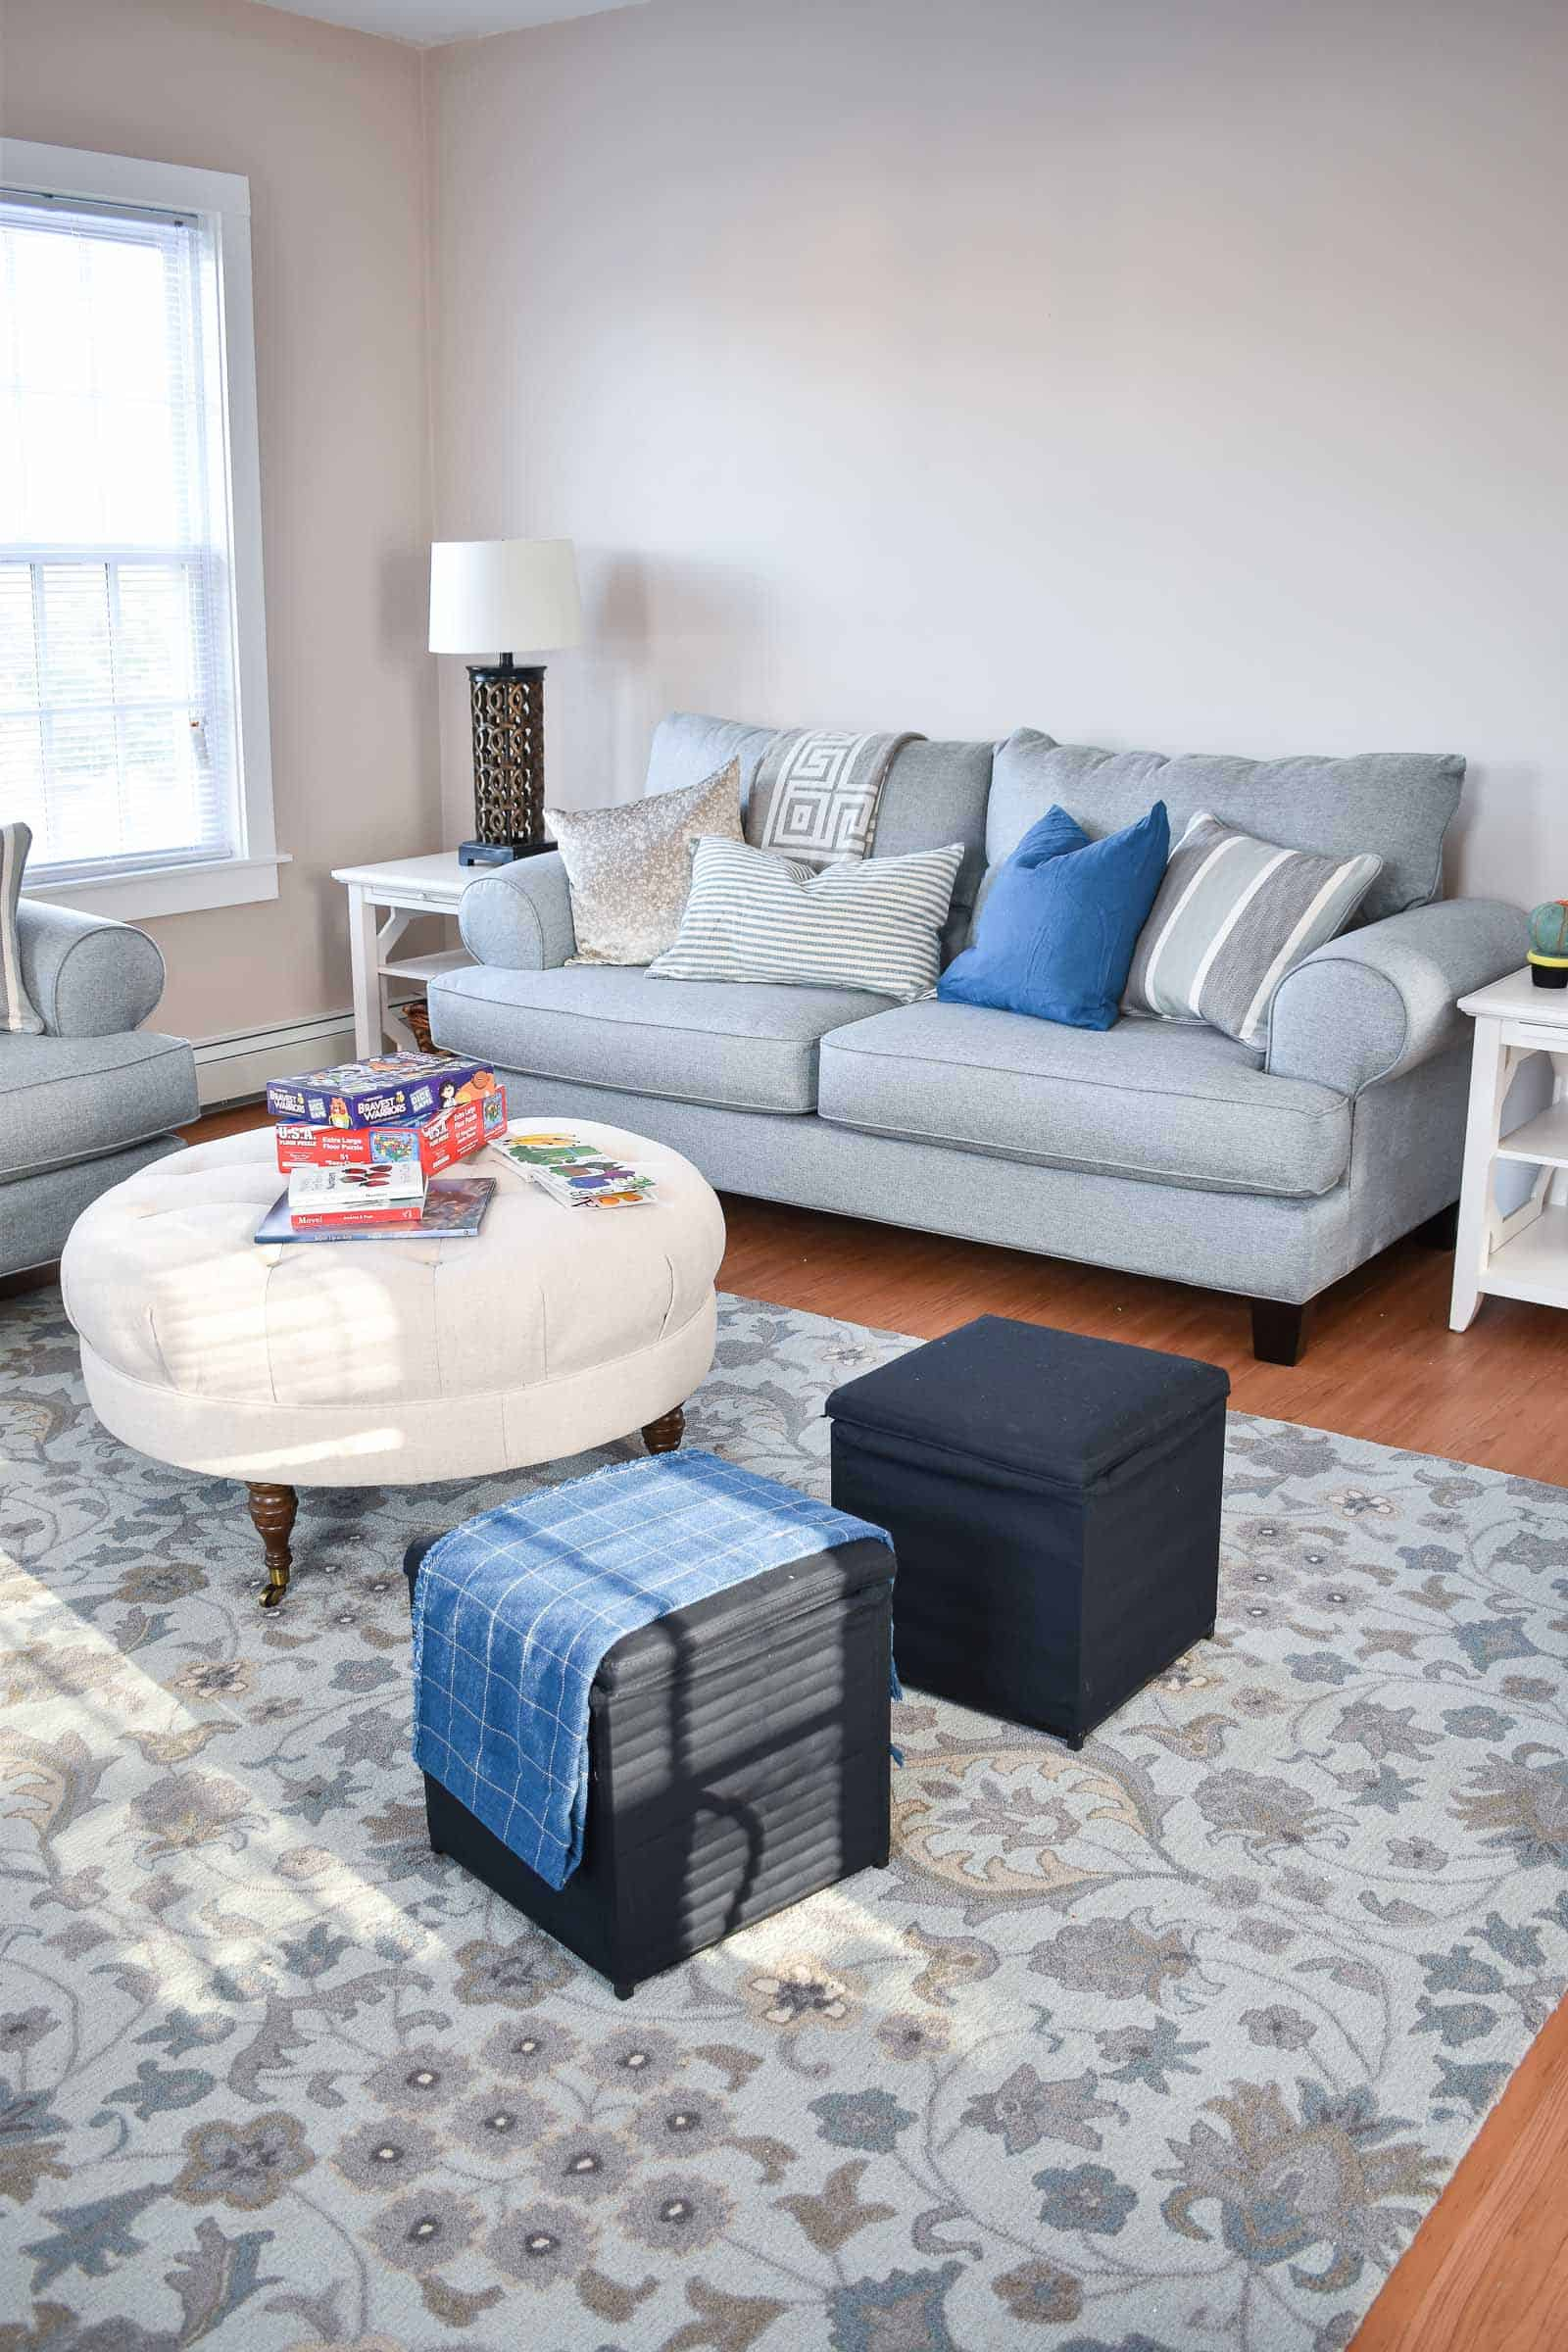 round ottoman in living room